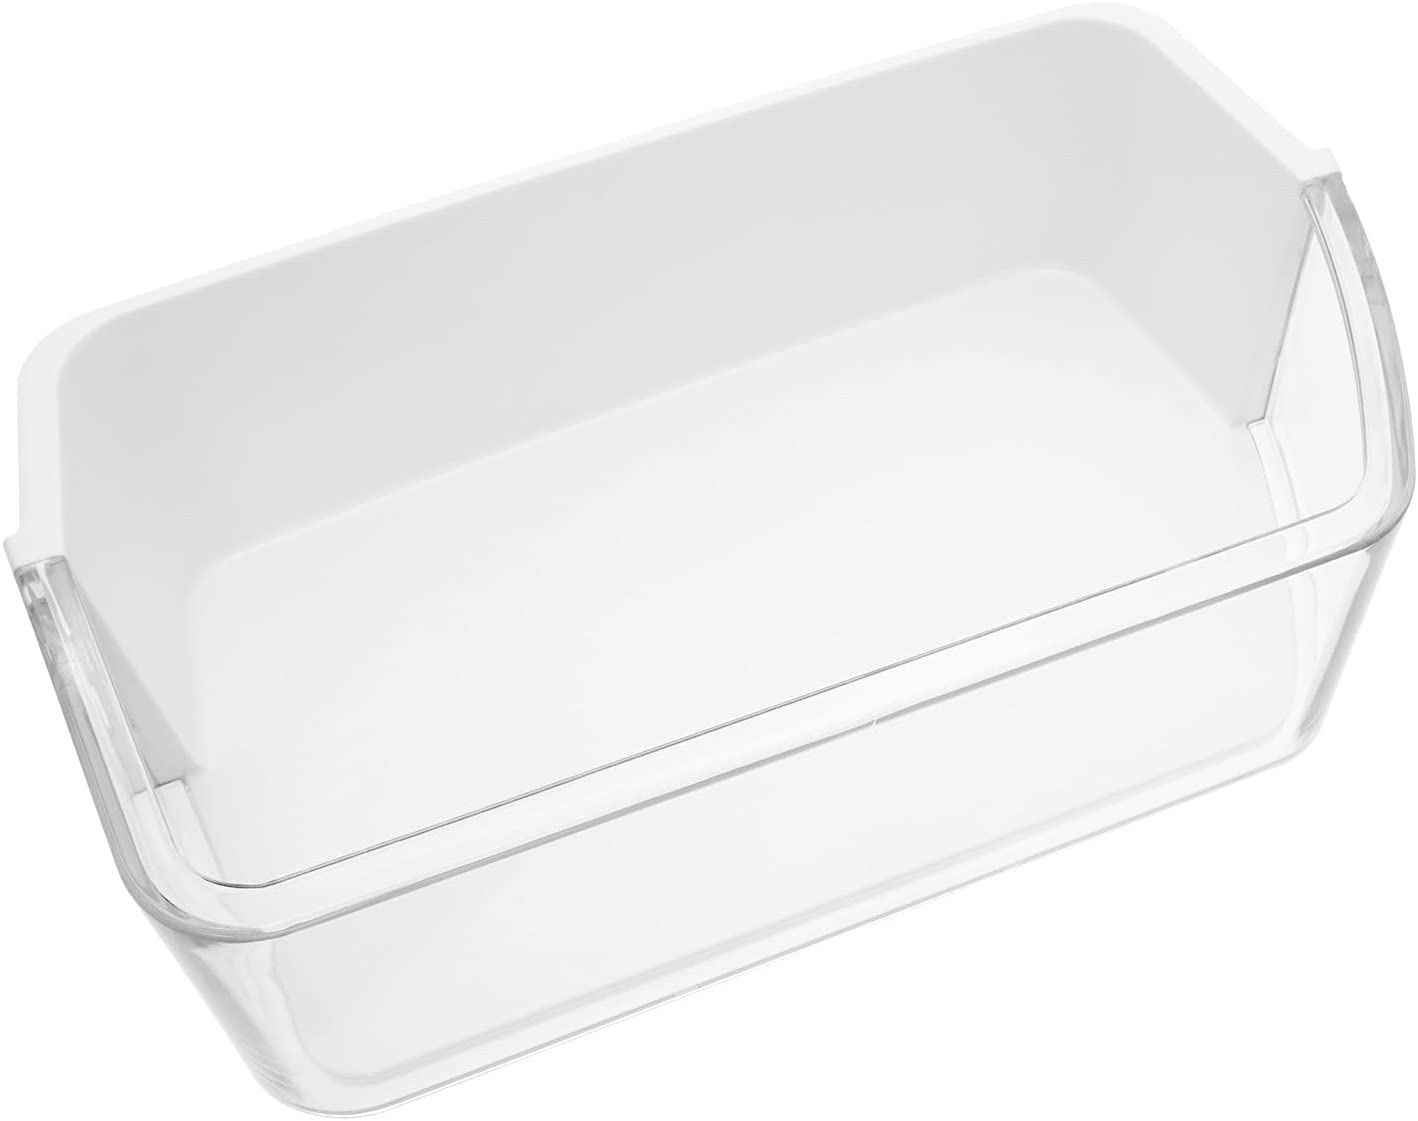 Ecumfy DA97-12650A Door Shelf Bin Sams Super popular specialty store with Compatible Limited time for free shipping Right